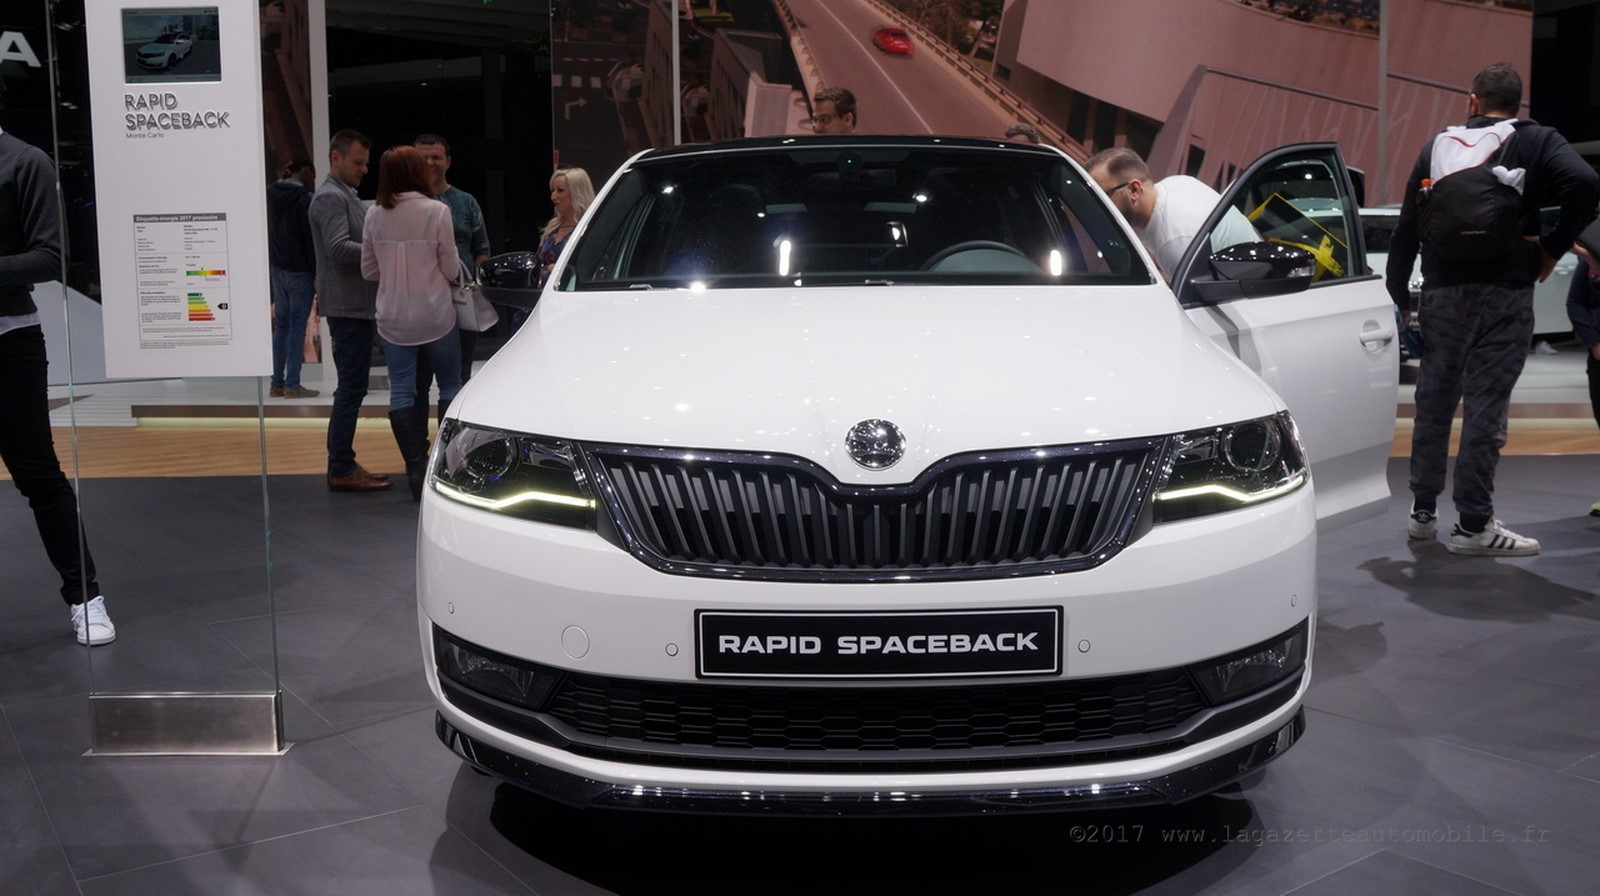 Skoda Rapid Spaceback (facelift)